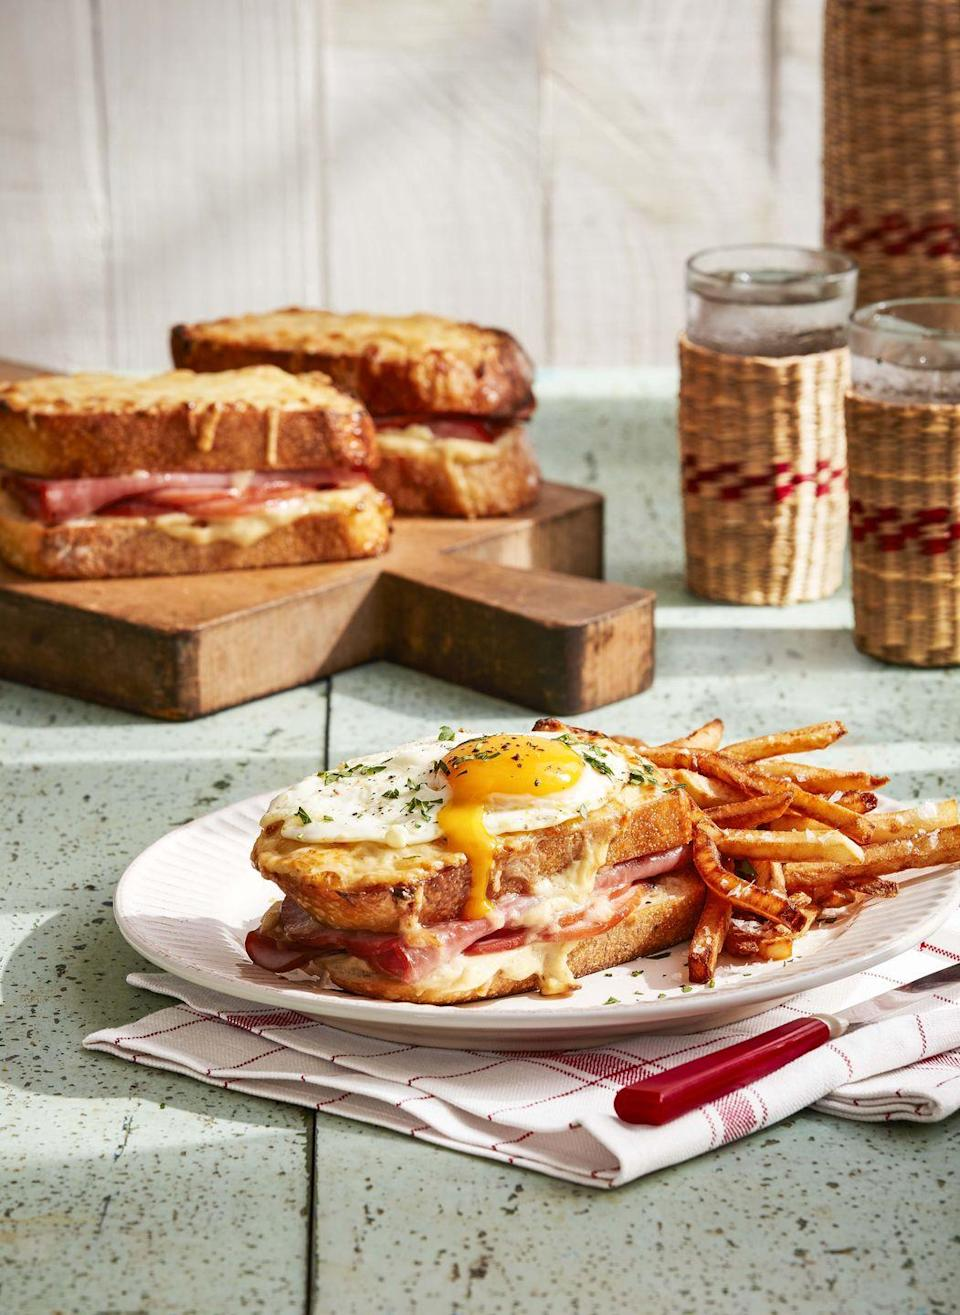 """<p>Possibly the ultimate combination of eggy breakfast and sandwichy lunch, this brunch special is always a treat.</p><p><strong><a href=""""https://www.countryliving.com/food-drinks/a32042684/croque-madames/"""" rel=""""nofollow noopener"""" target=""""_blank"""" data-ylk=""""slk:Get the recipe"""" class=""""link rapid-noclick-resp"""">Get the recipe</a>.</strong></p><p><strong><a class=""""link rapid-noclick-resp"""" href=""""https://www.amazon.com/Victoria-Skillet-Seasoned-Flaxseed-Certified/dp/B01726HD72/?tag=syn-yahoo-20&ascsubtag=%5Bartid%7C10050.g.34822192%5Bsrc%7Cyahoo-us"""" rel=""""nofollow noopener"""" target=""""_blank"""" data-ylk=""""slk:SHOP SKILLETS"""">SHOP SKILLETS</a><br></strong></p>"""